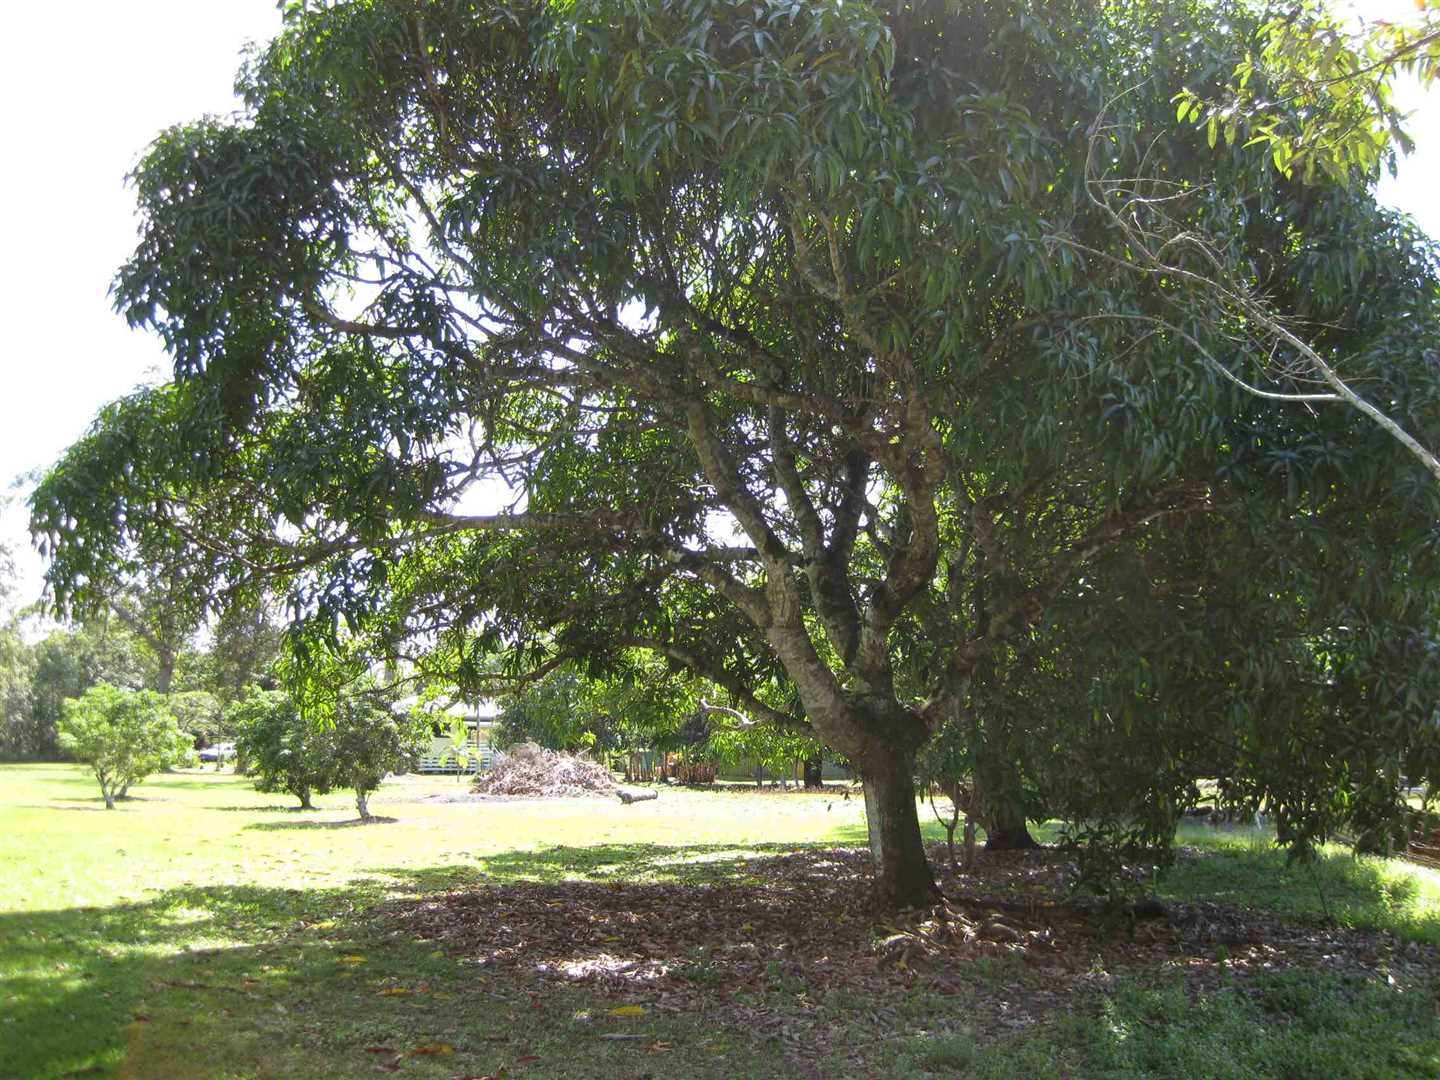 View of part of property showing some fruit trees, photo 2